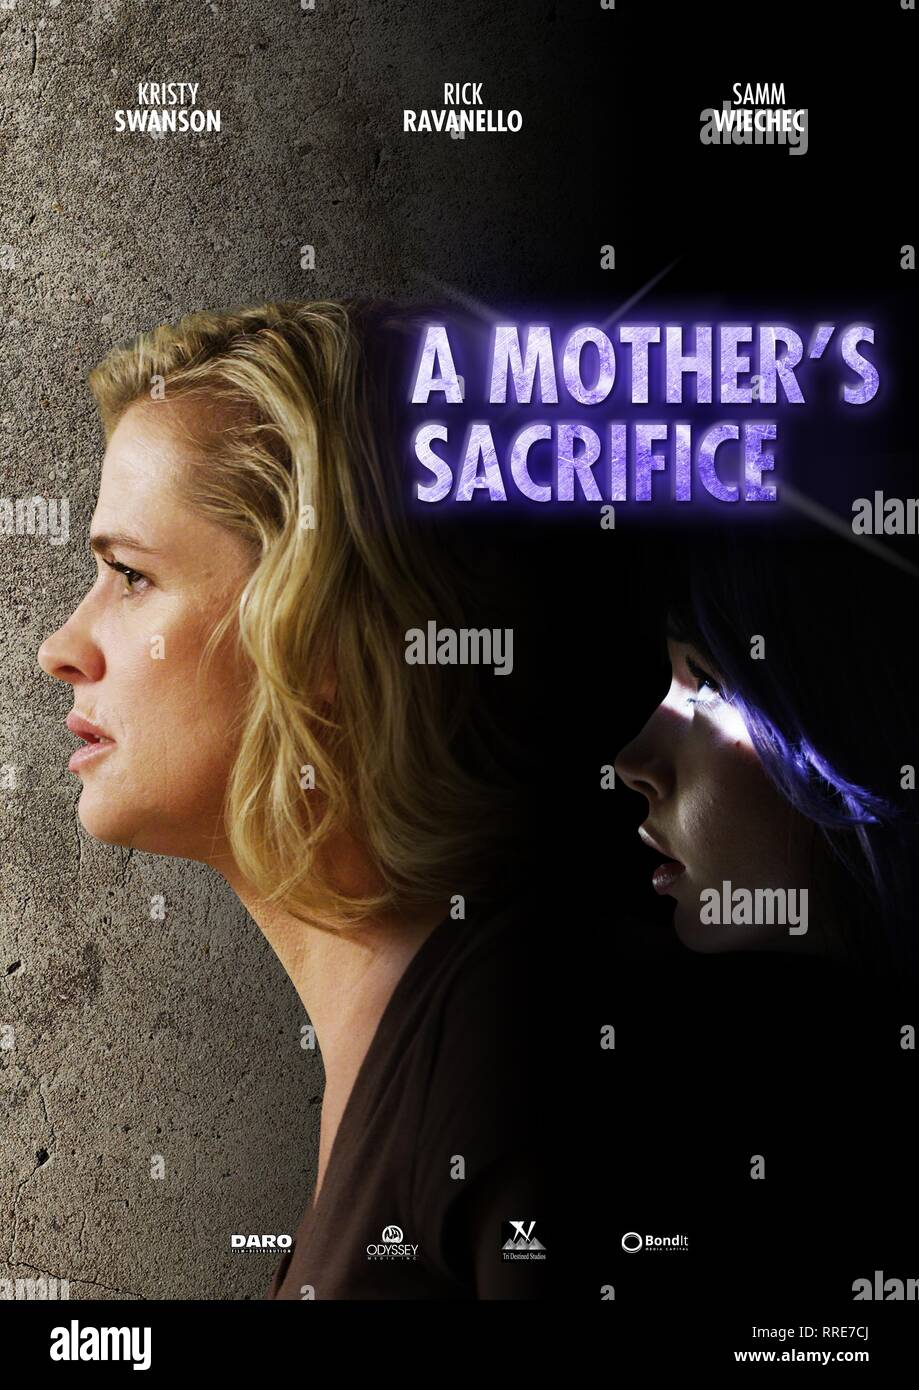 A MOTHER'S SACRIFICE, MOVIE POSTER, 2017 - Stock Image